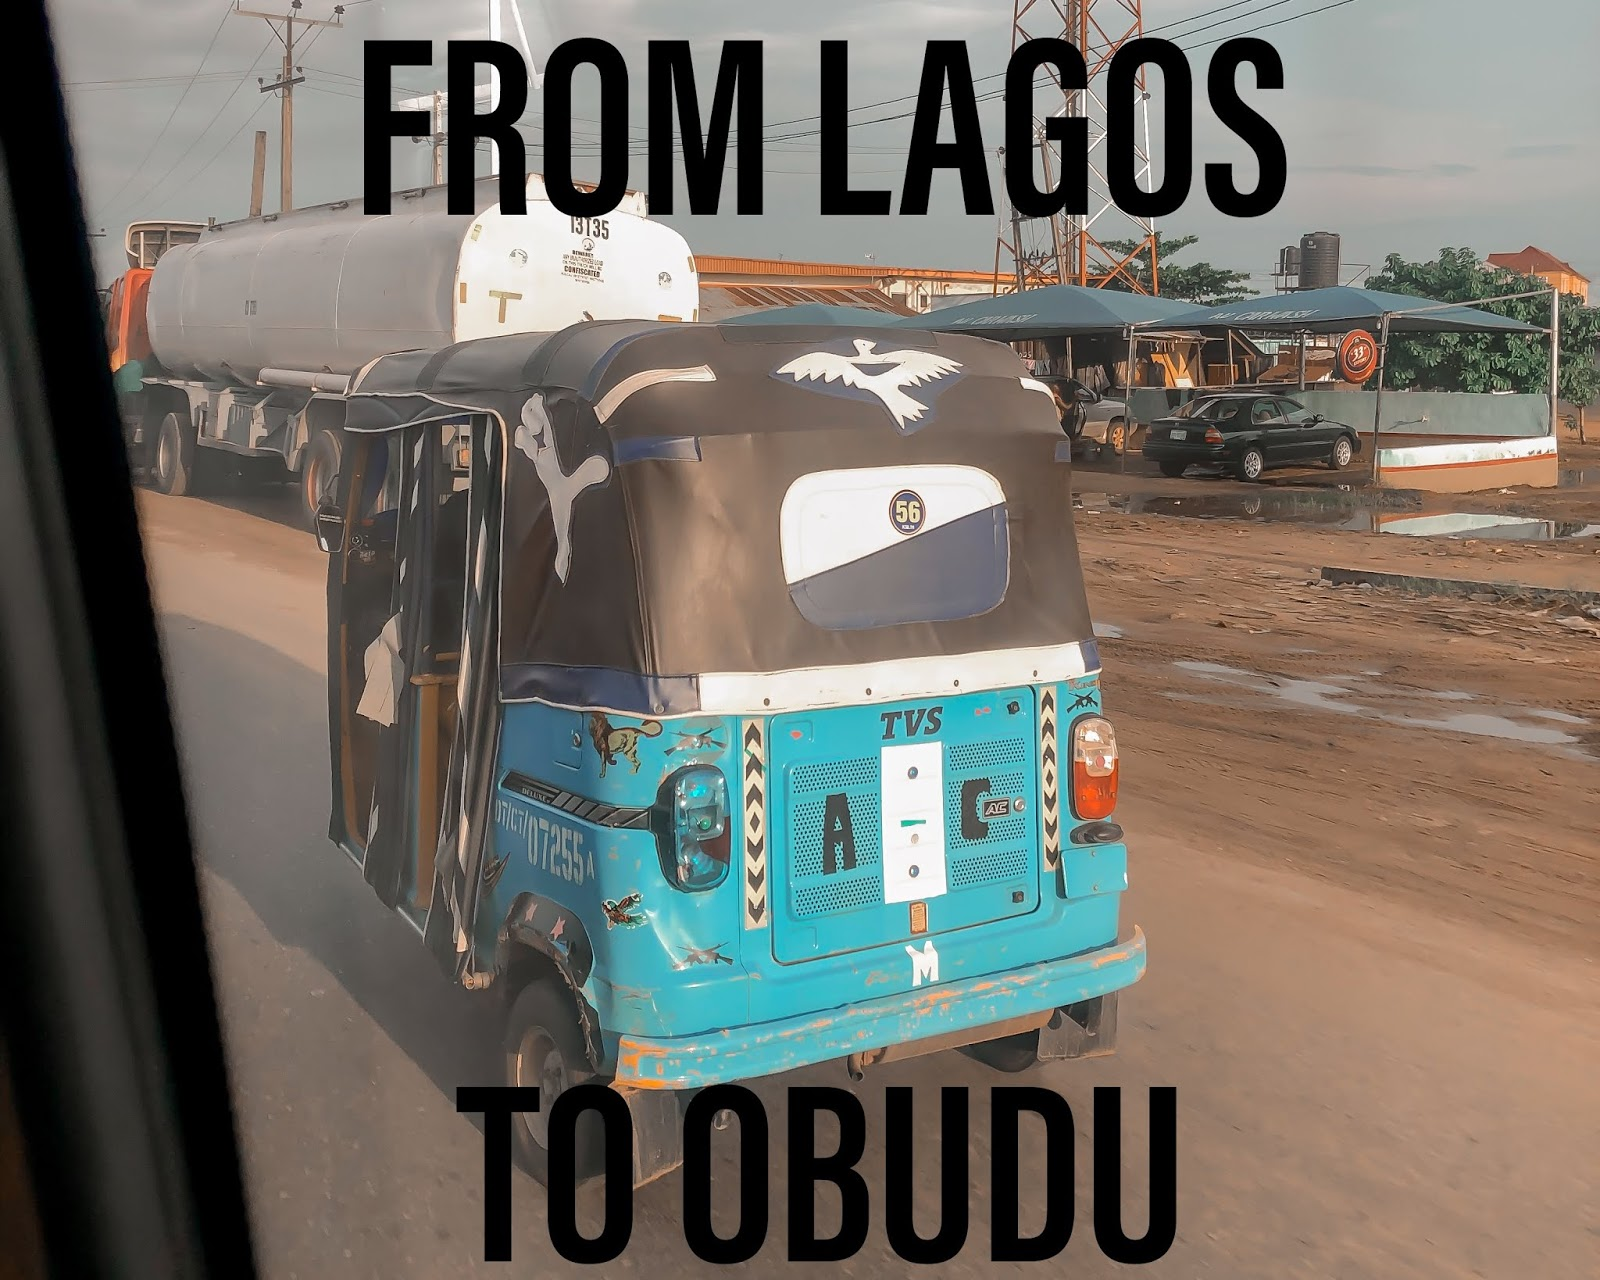 how to get to Obudu from Lagos